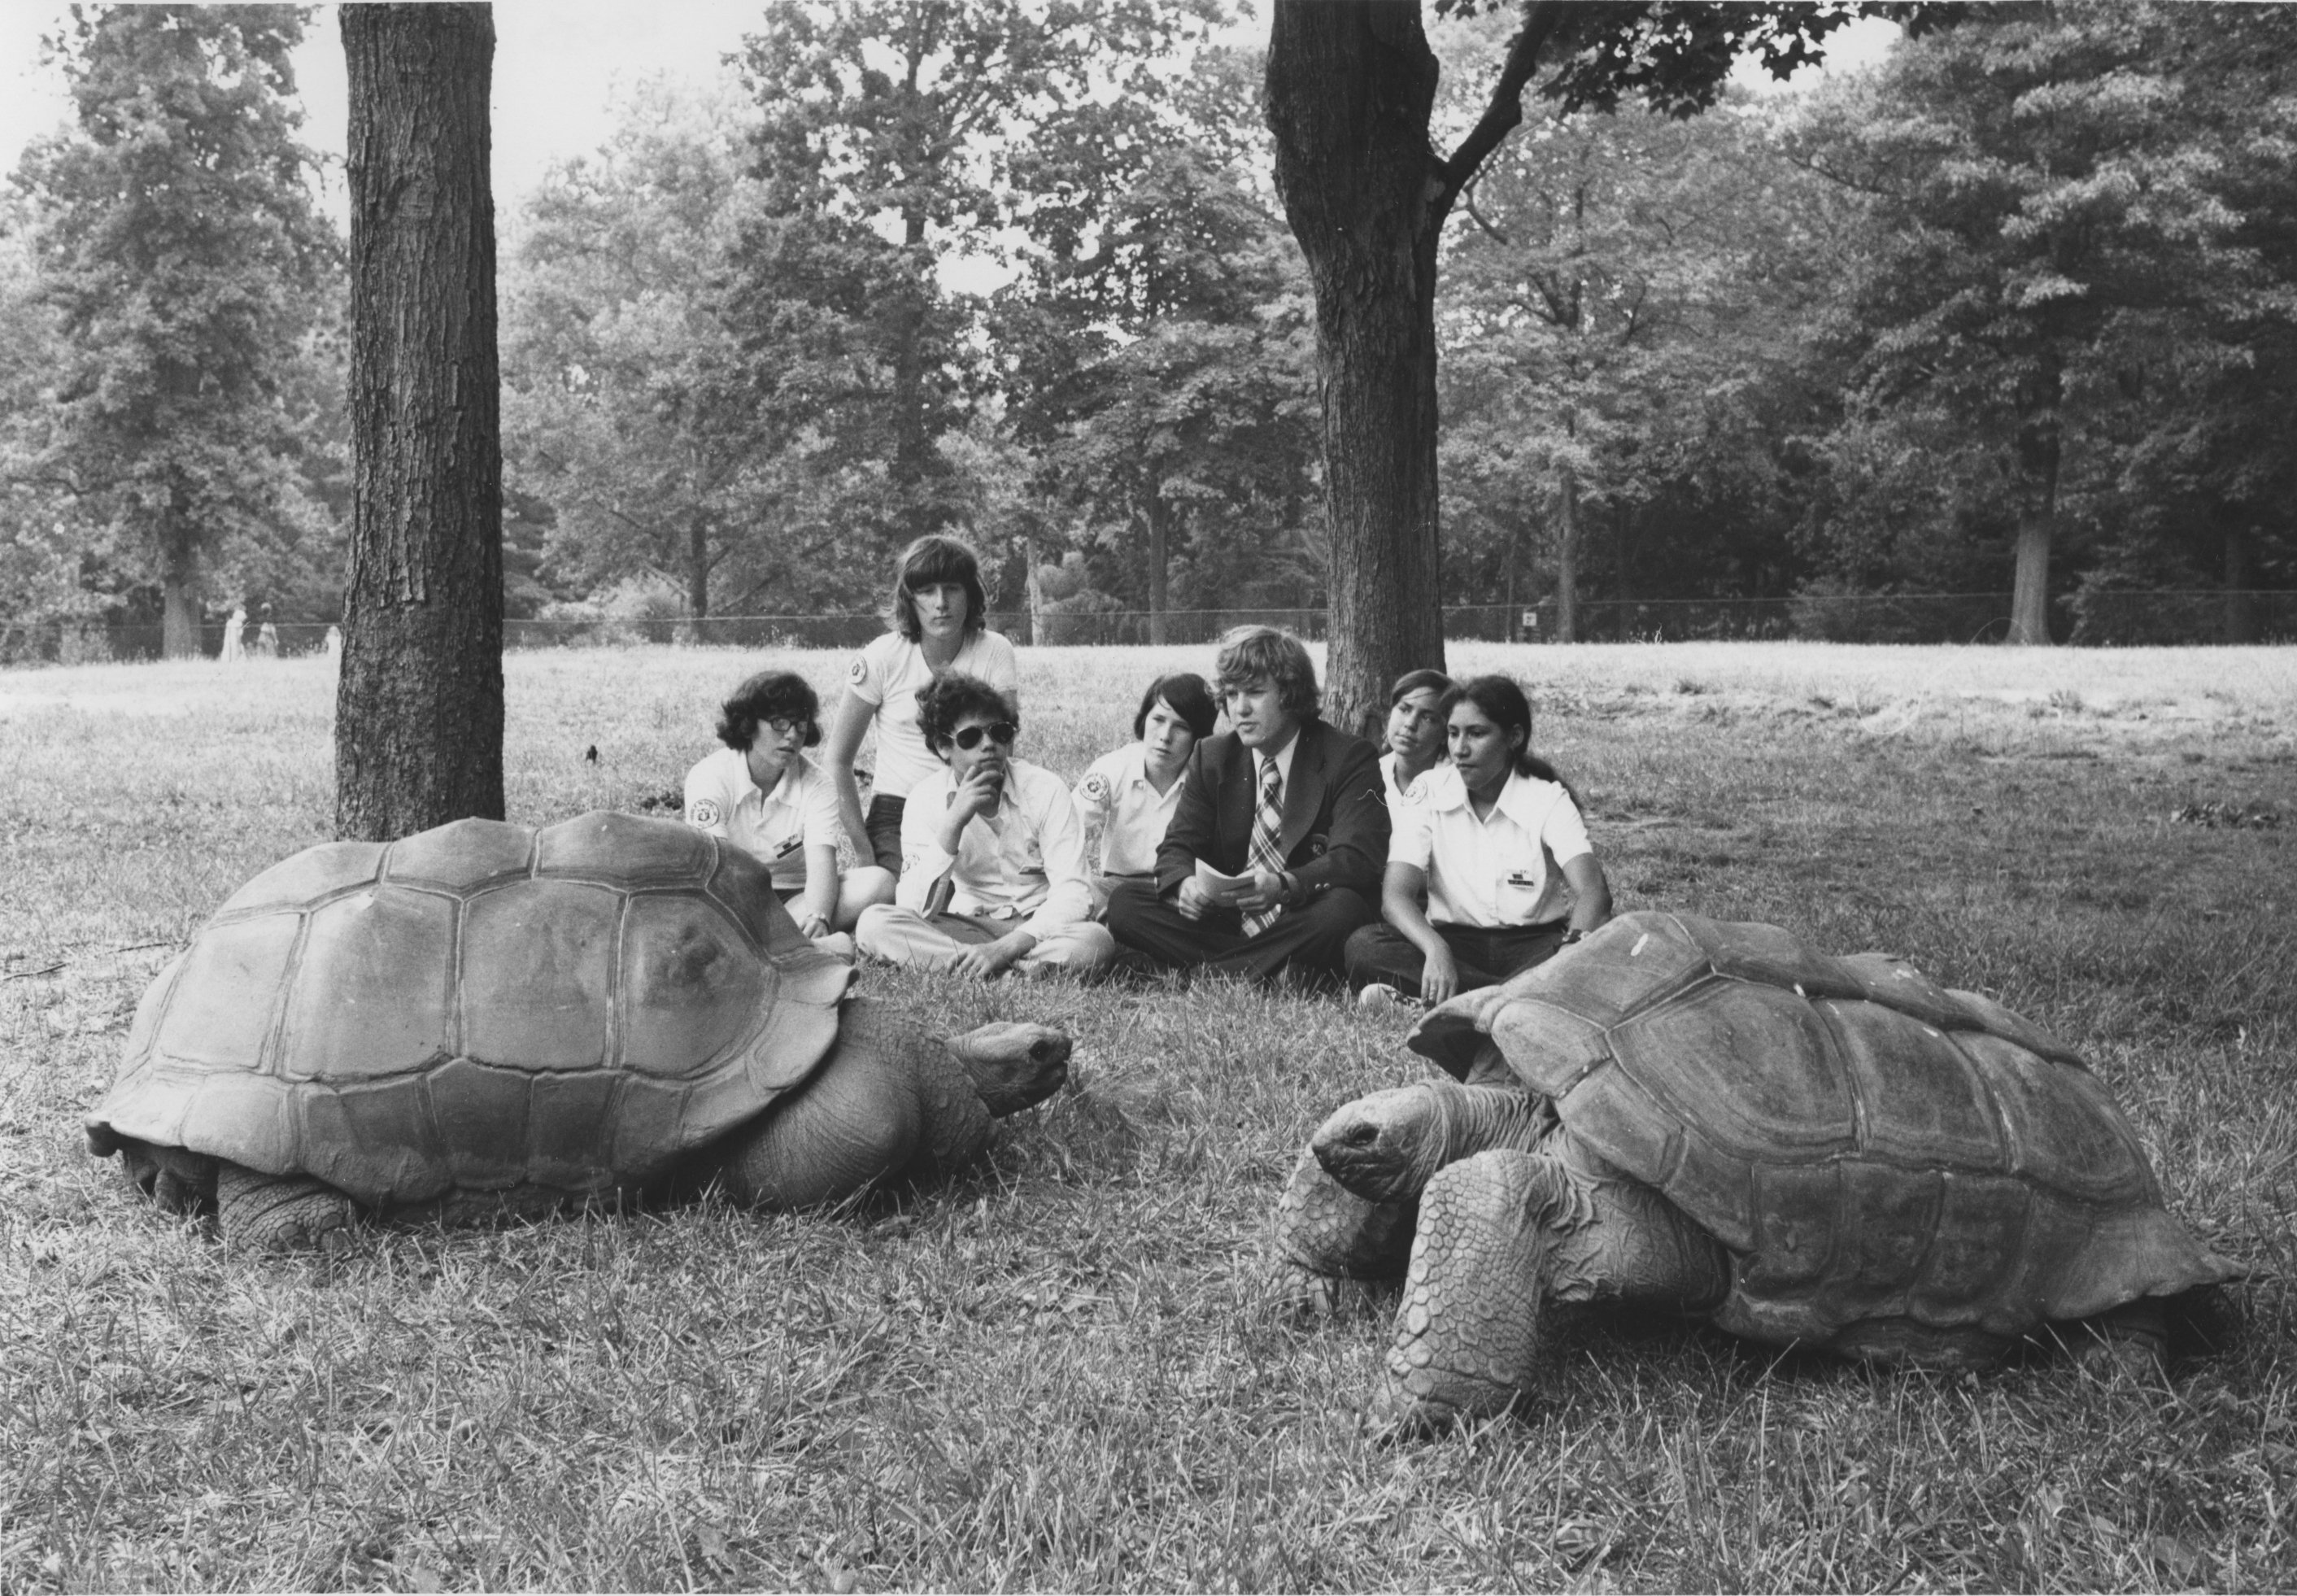 Visitors get quite an up-close look at the zoo's tortoises. Photo courtesy of the Smithsonian Institution Archives.